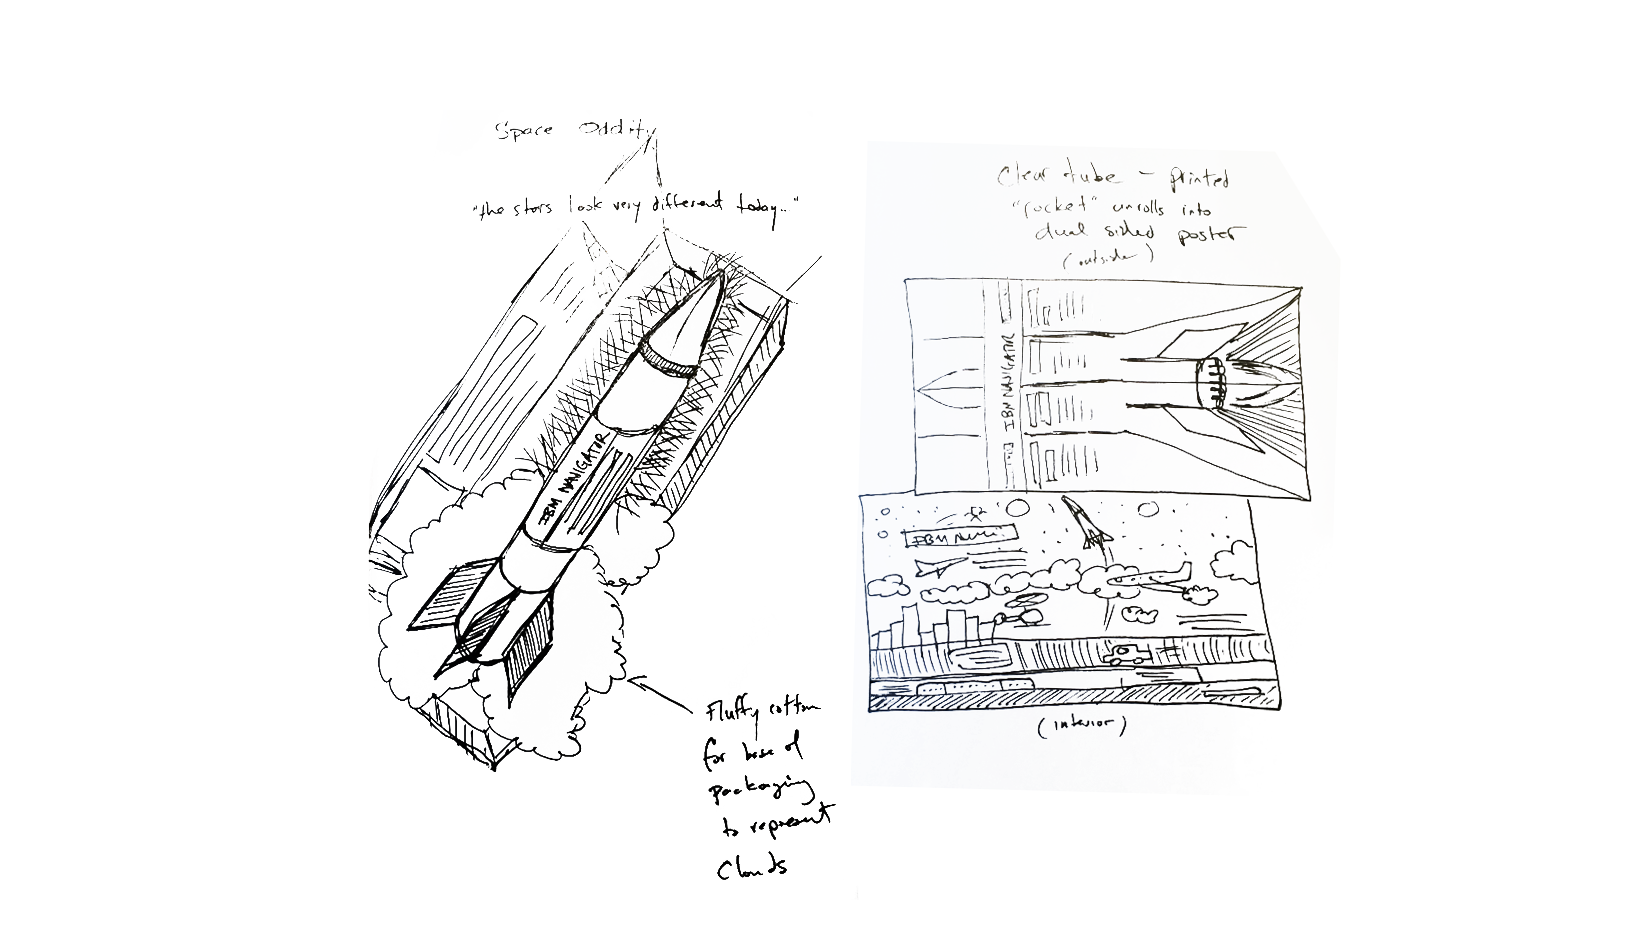 work_IBM_rocket_sketches1.png